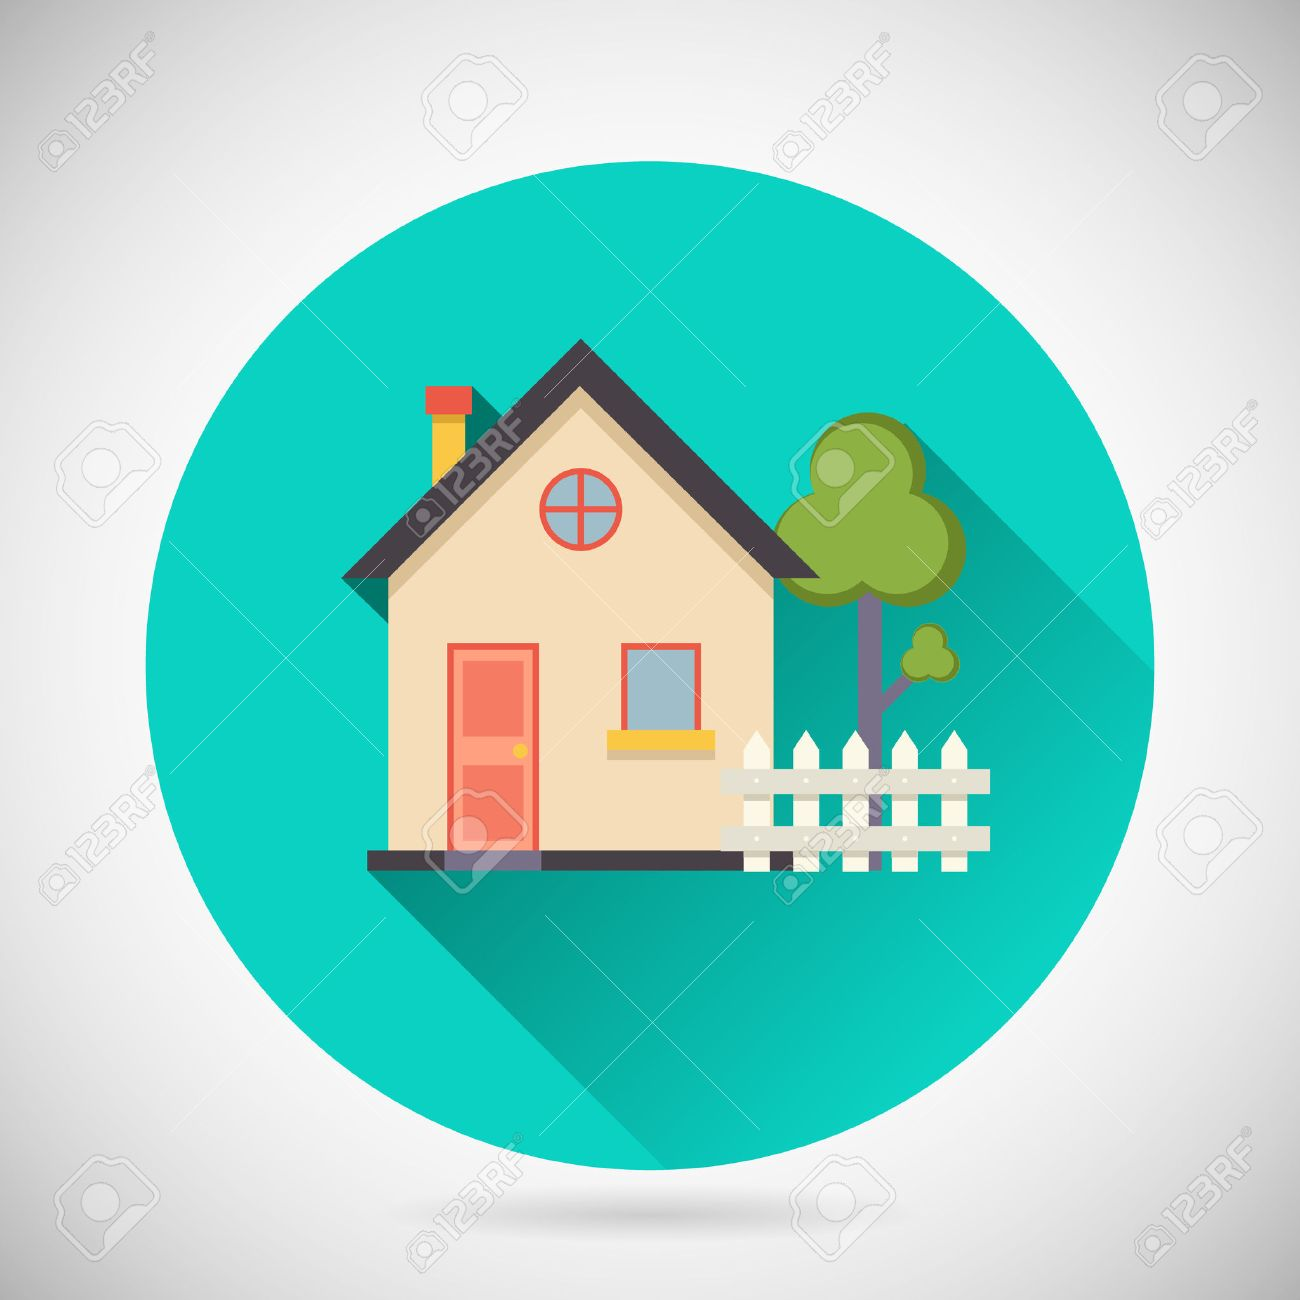 Real estate symbol house building private property tree fence real estate symbol house building private property tree fence icon with long shadow on stylish background biocorpaavc Image collections